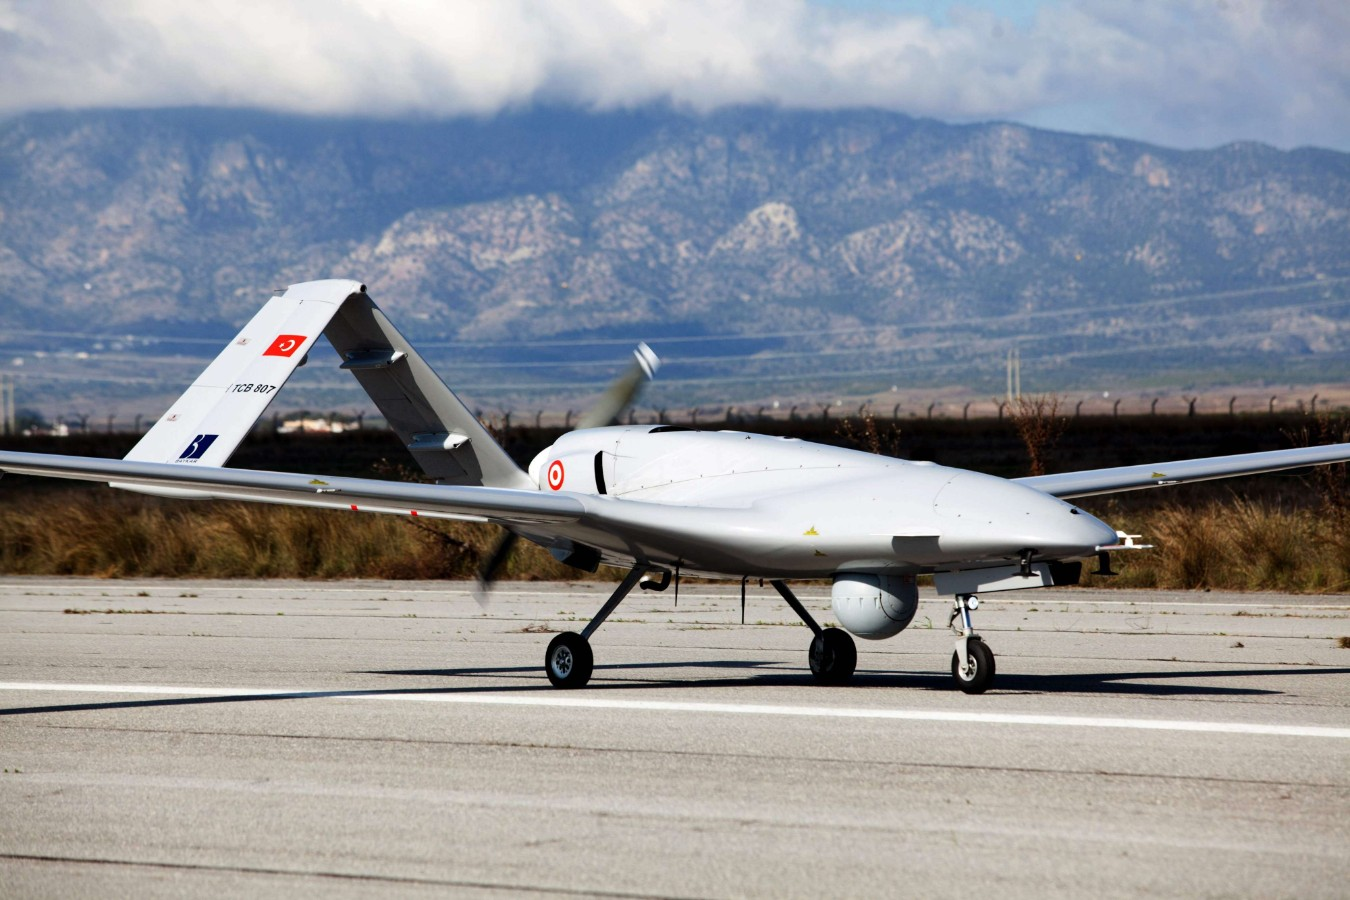 The Turkish Bayraktar TB2 drone at Gecitkale Airport in Famagusta in the self-proclaimed Turkish Republic of Northern Cyprus (TRNC). (AFP)